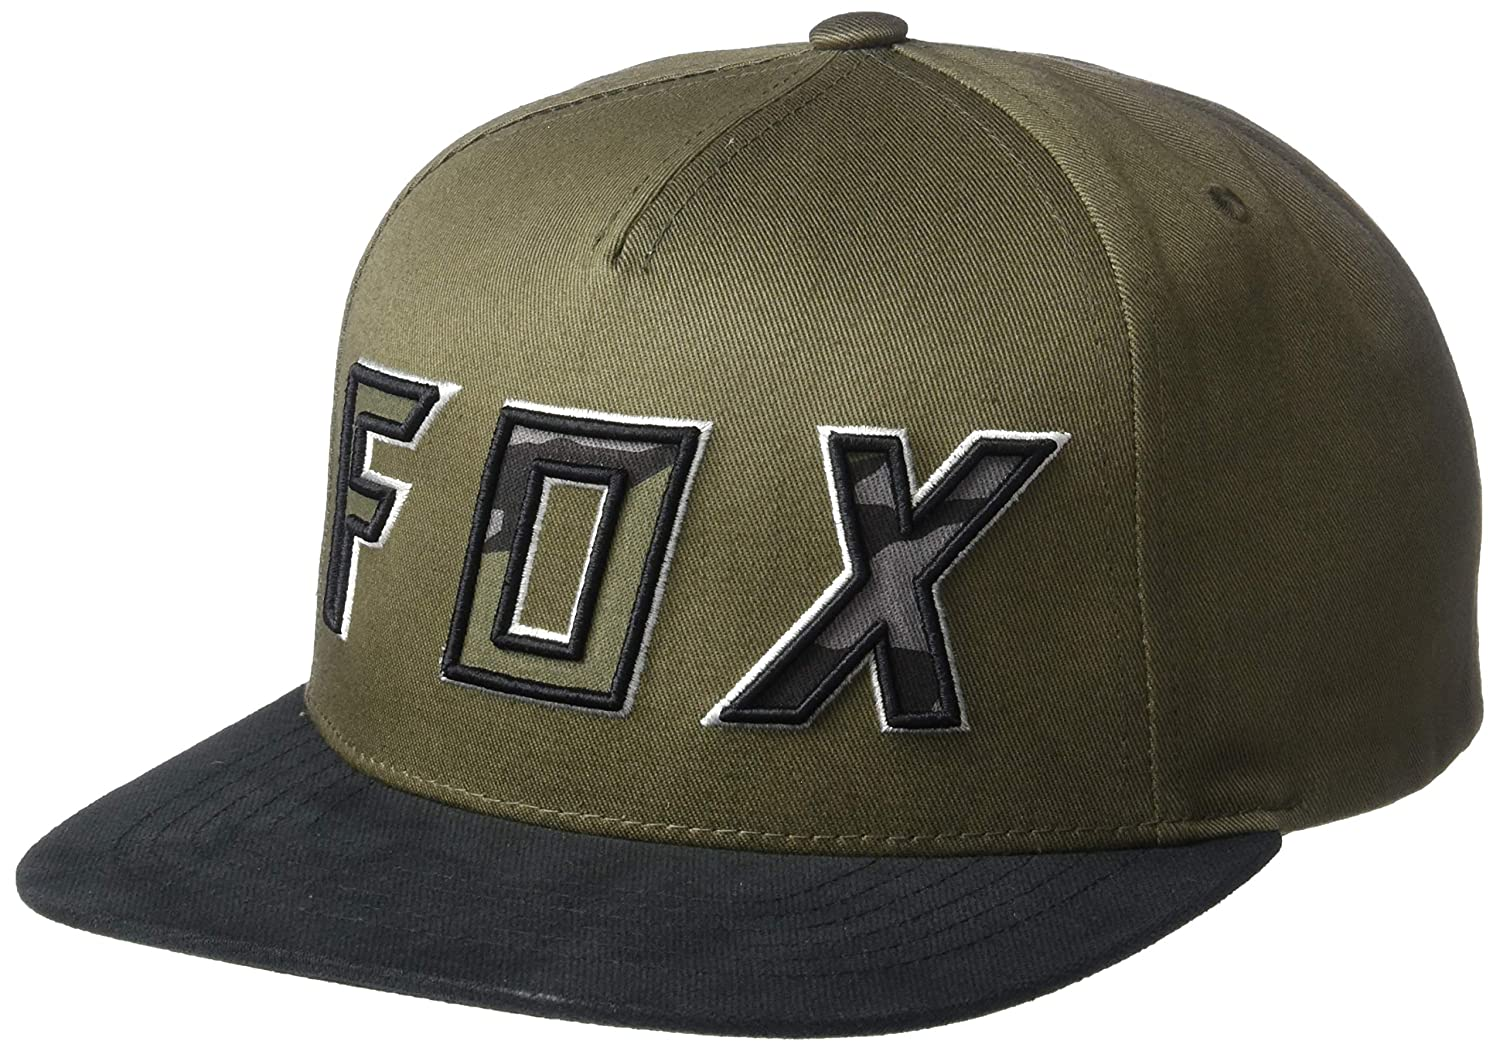 Fox Racing Mens Flat Bill Snapback Baseball Cap